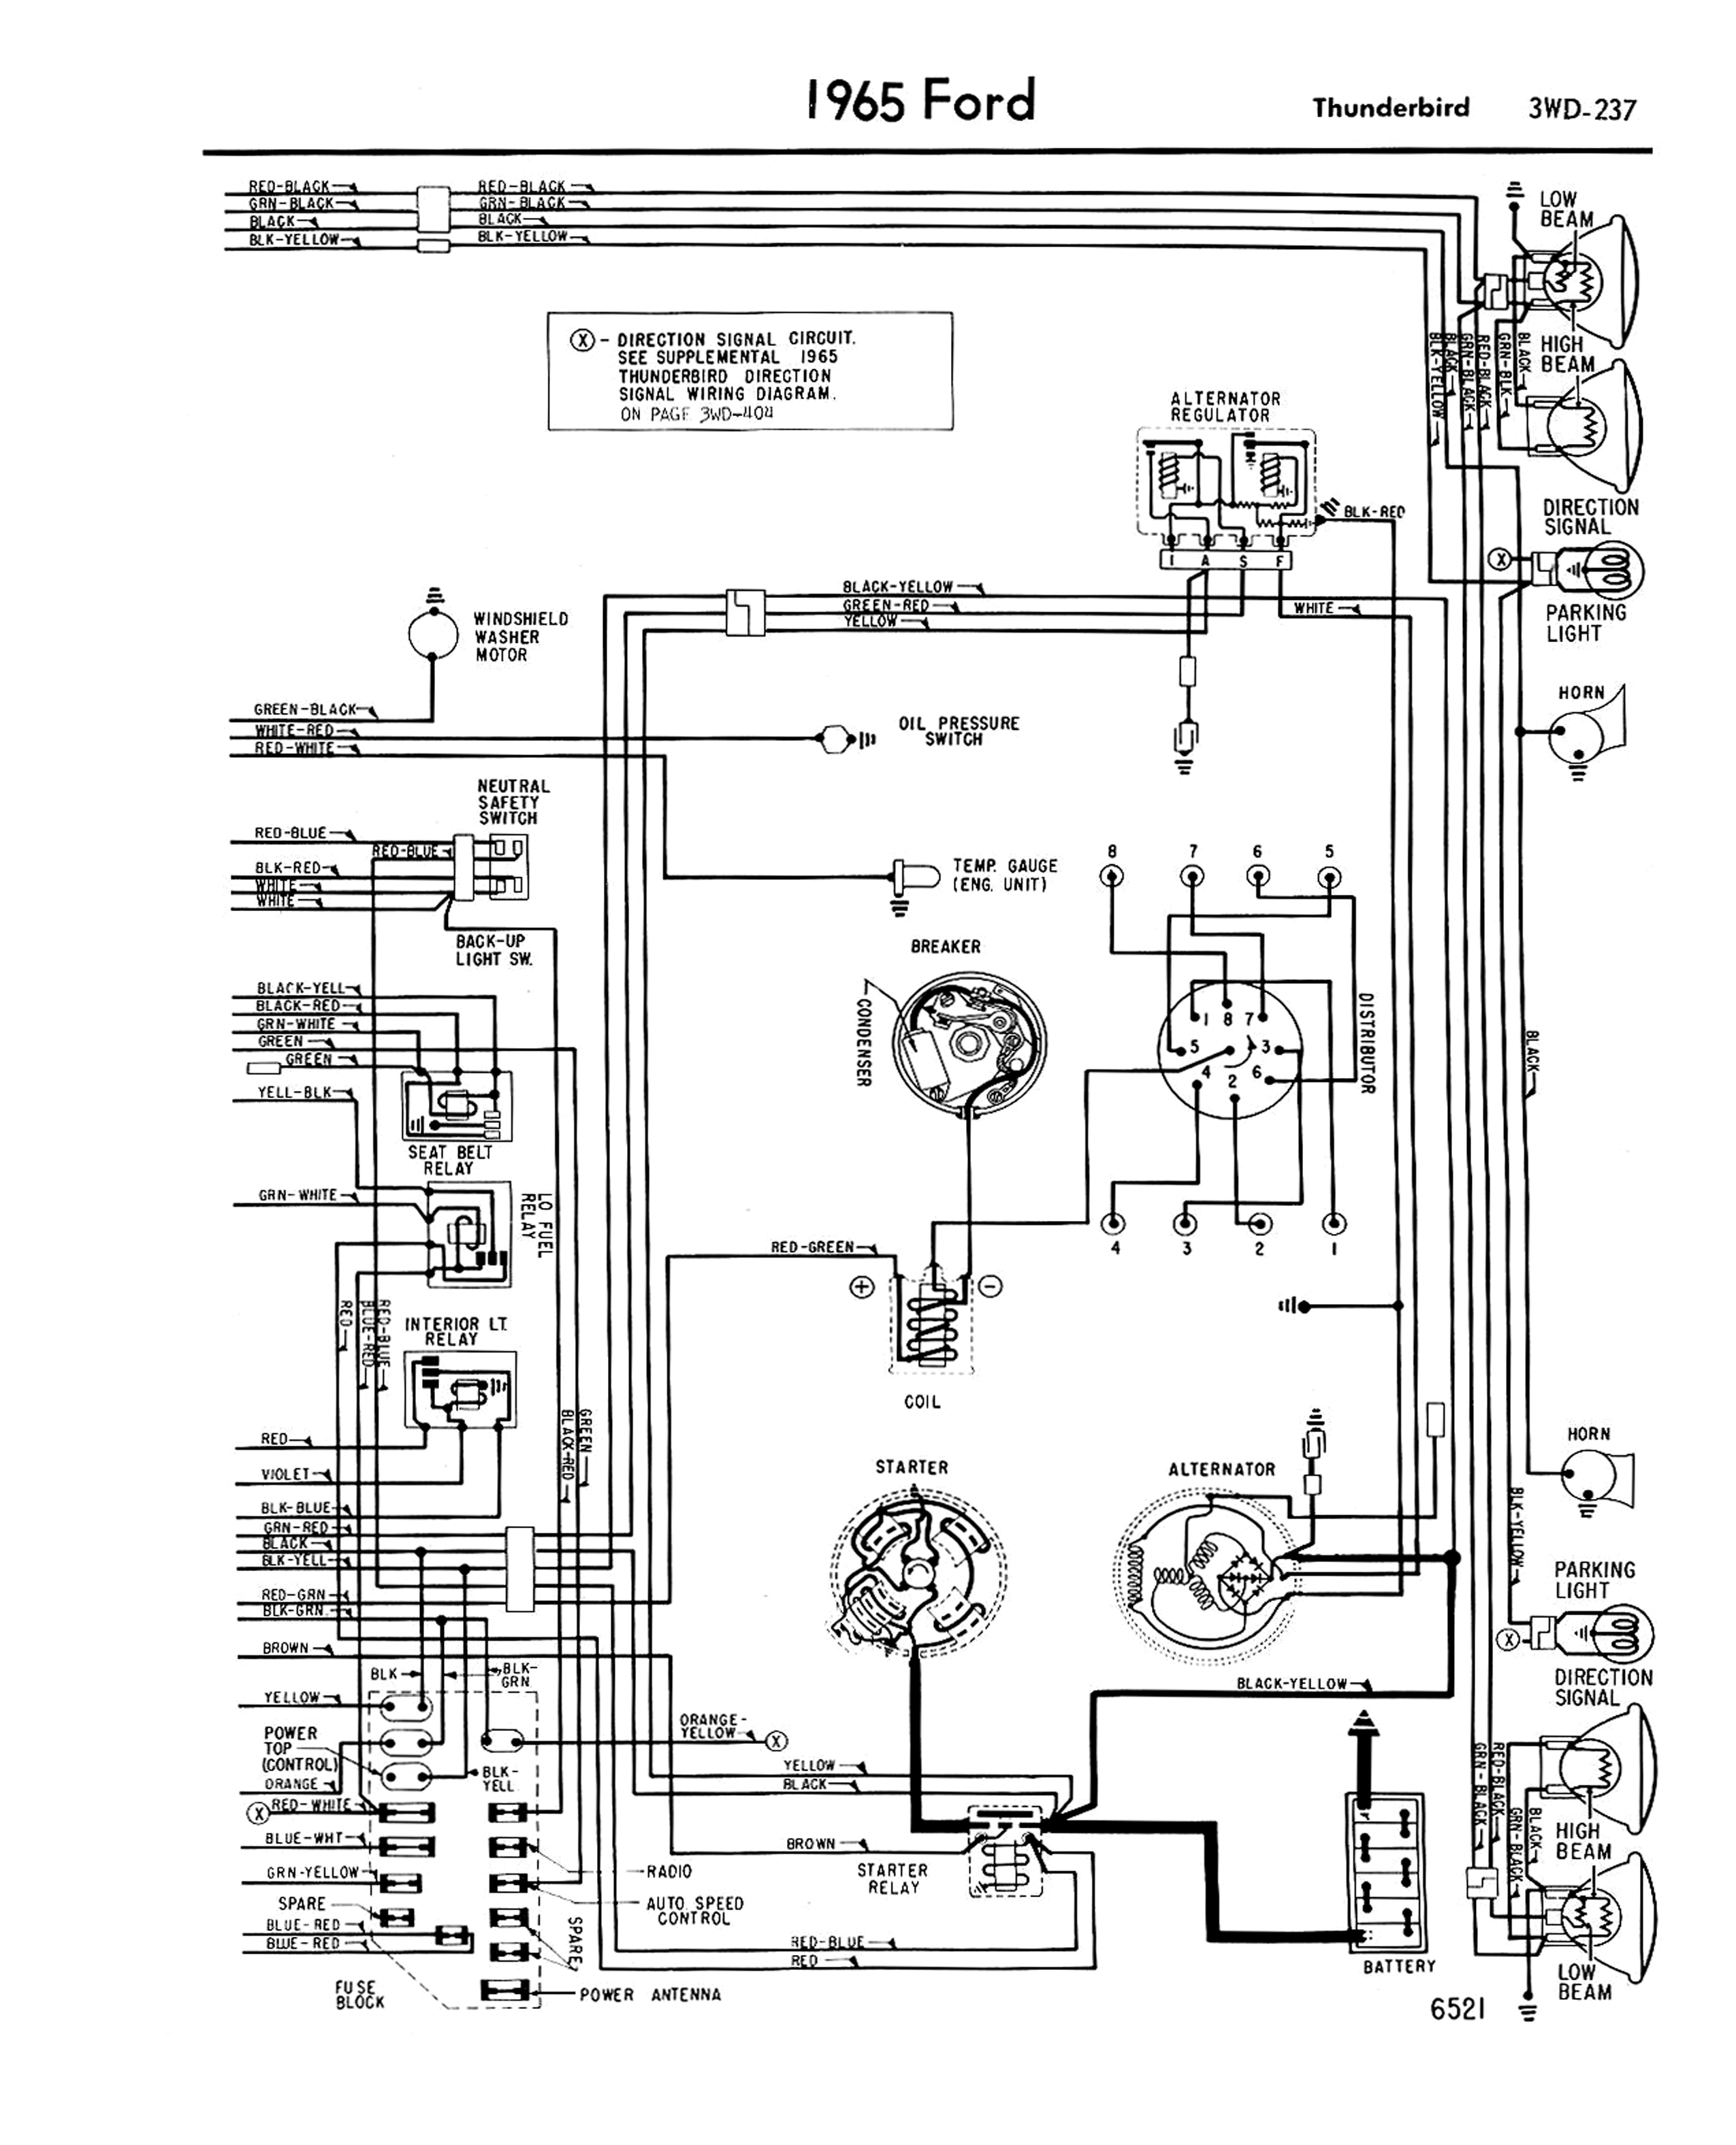 1973 F100 Turn Signal Wiring Diagram Free Download Great 1950 Ford Furthermore Rh 1 Hvacgroup Eu